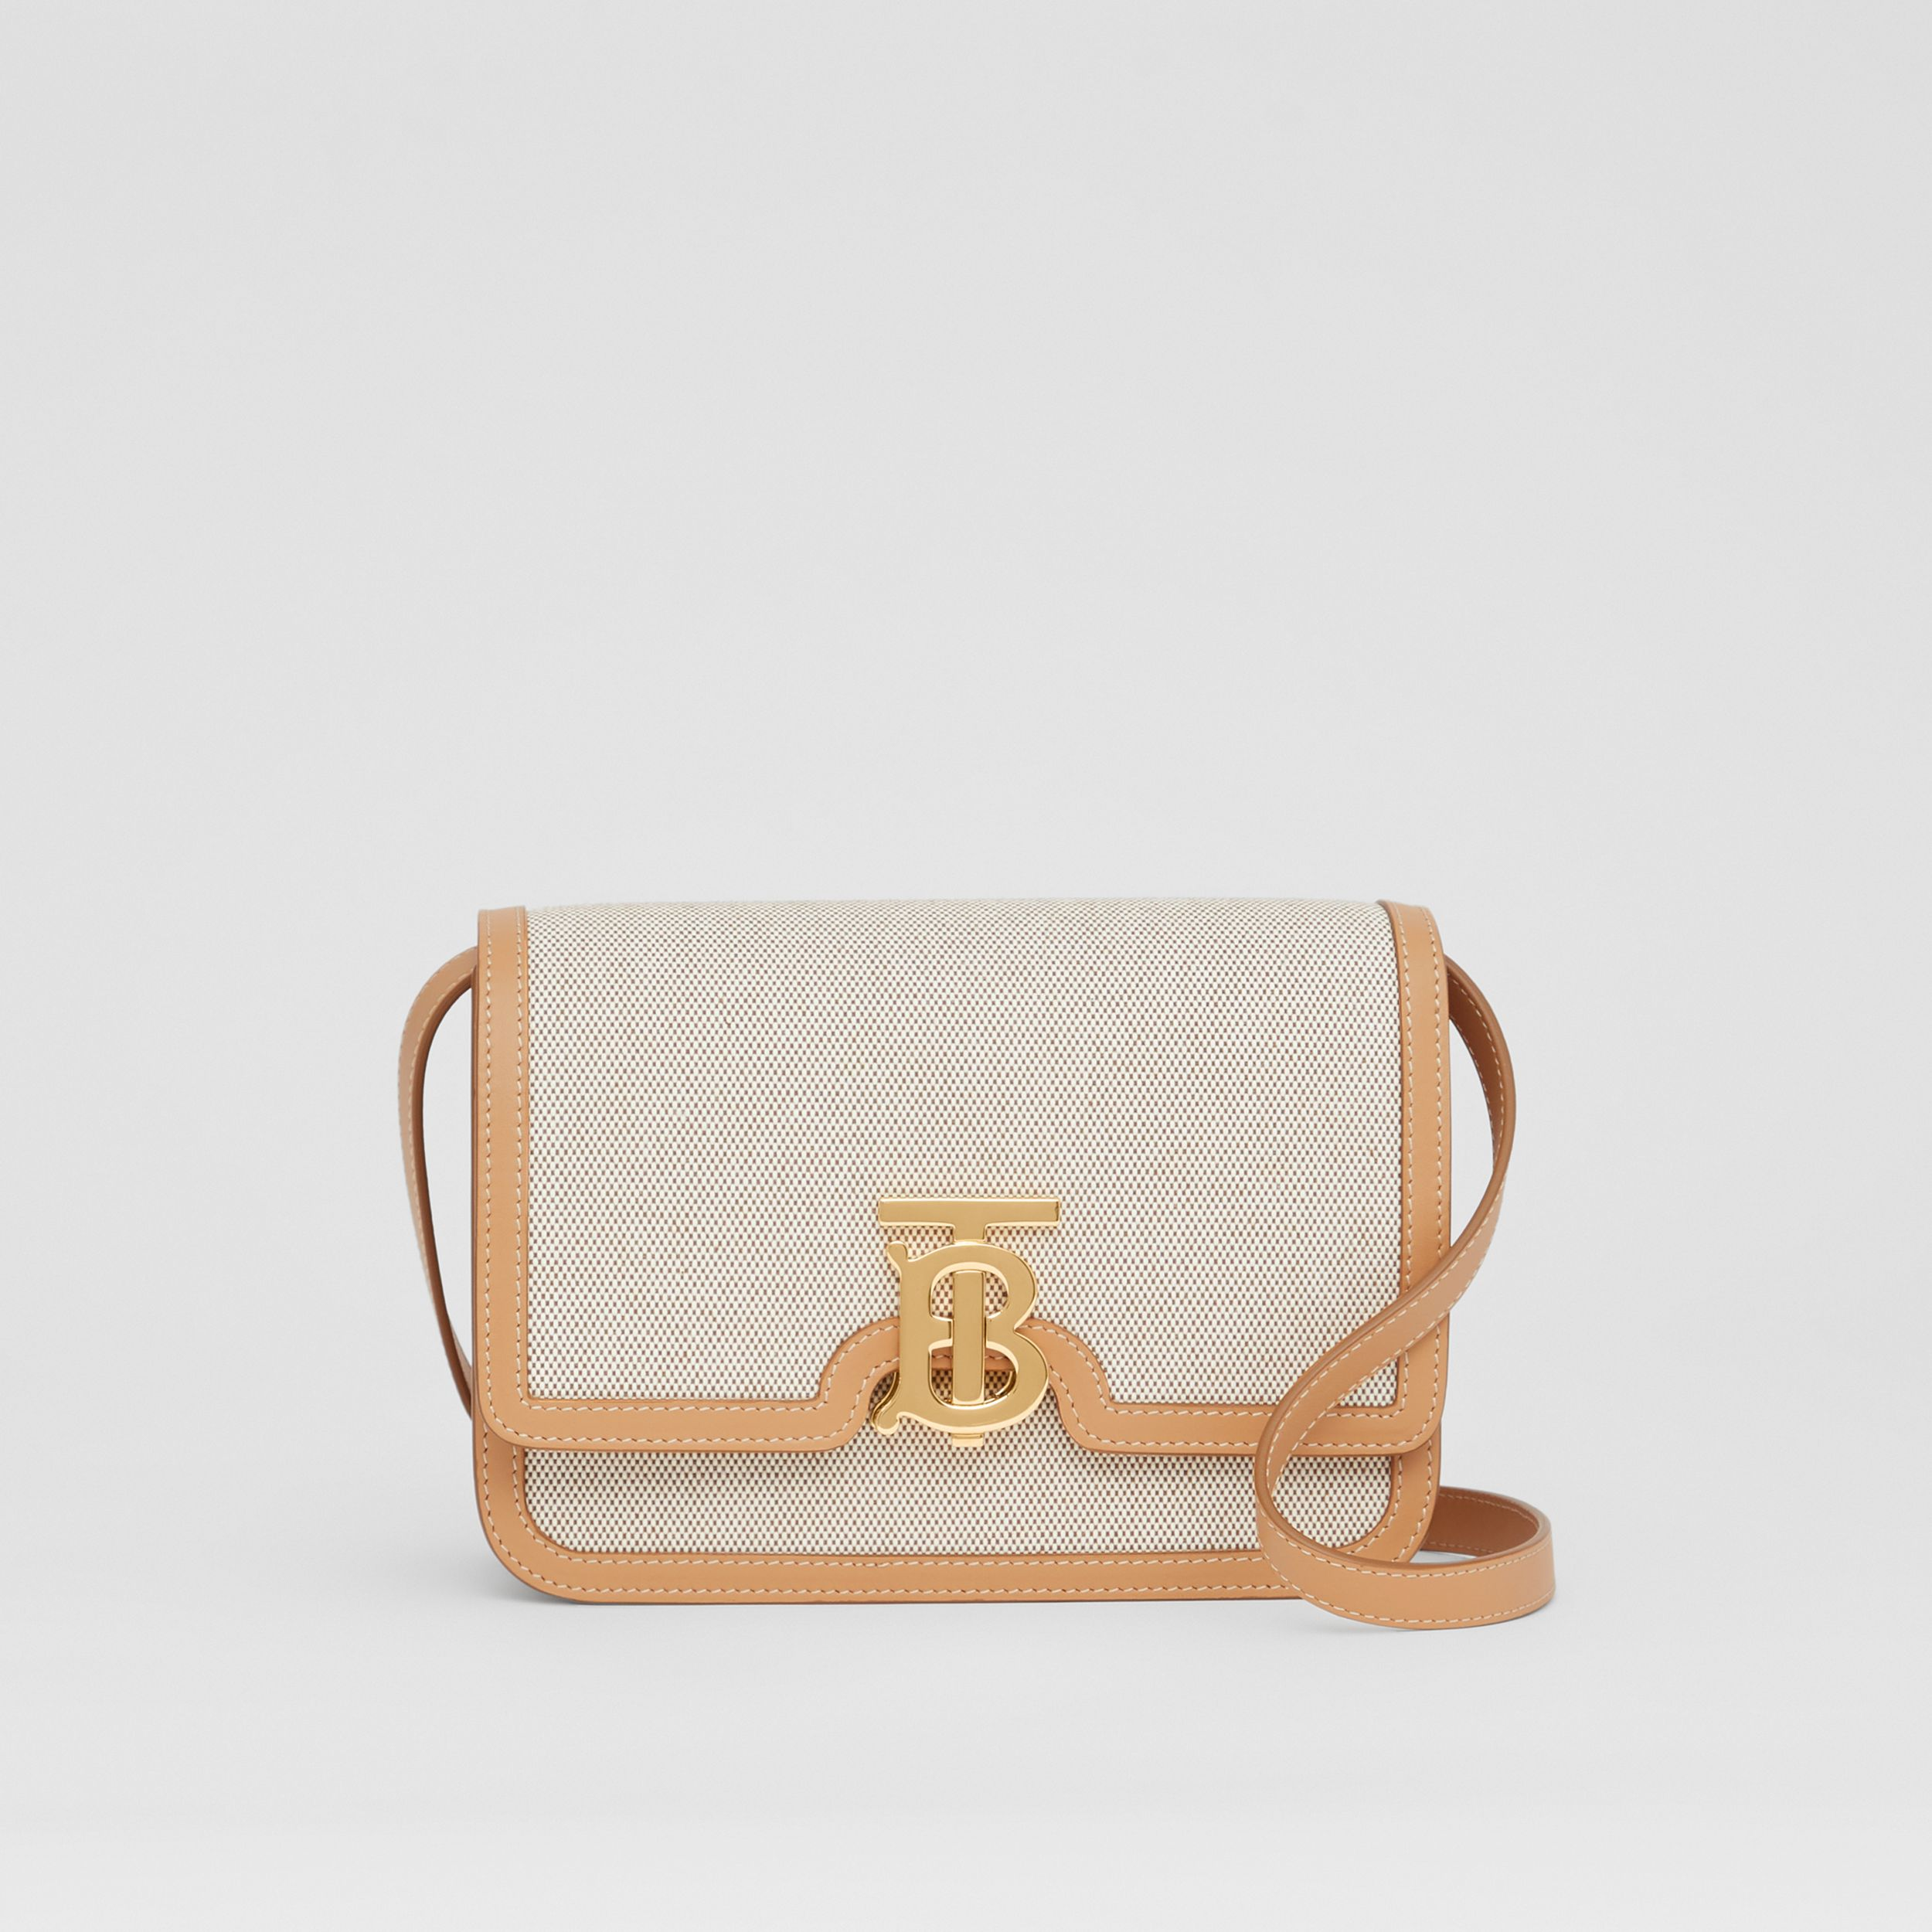 Small Two-tone Canvas and Leather TB Bag in Soft Fawn/warm Sand - Women | Burberry United Kingdom - 1